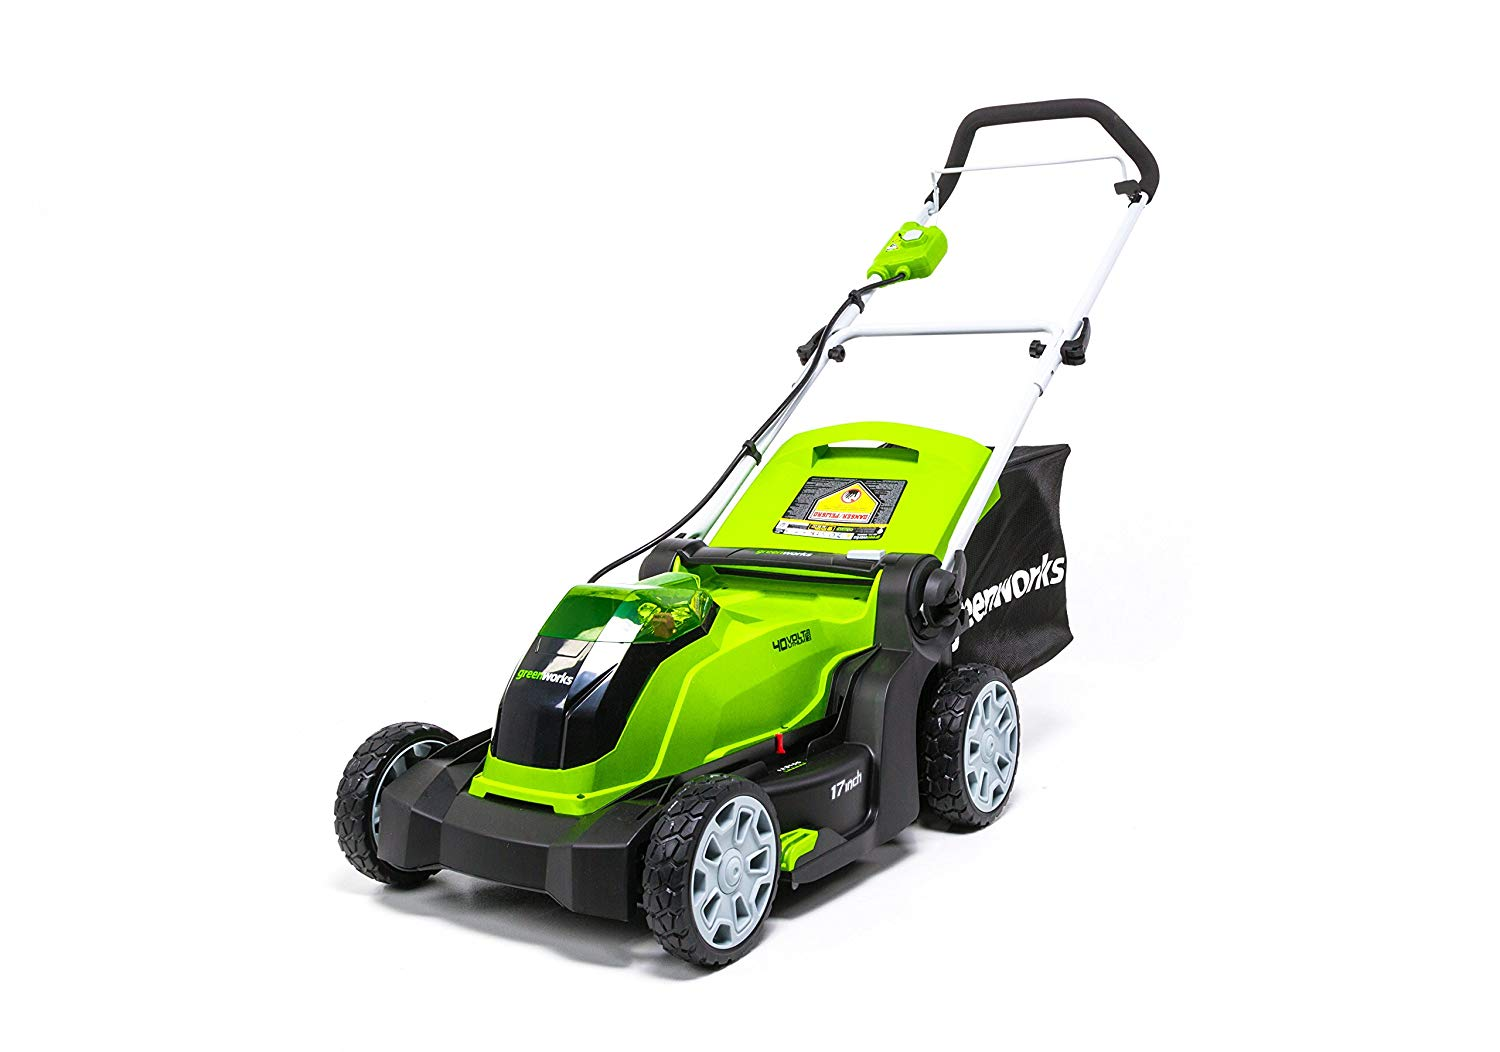 (MO40B01) 17-Inch 40V Cordless Lawn Mower From Greenworks